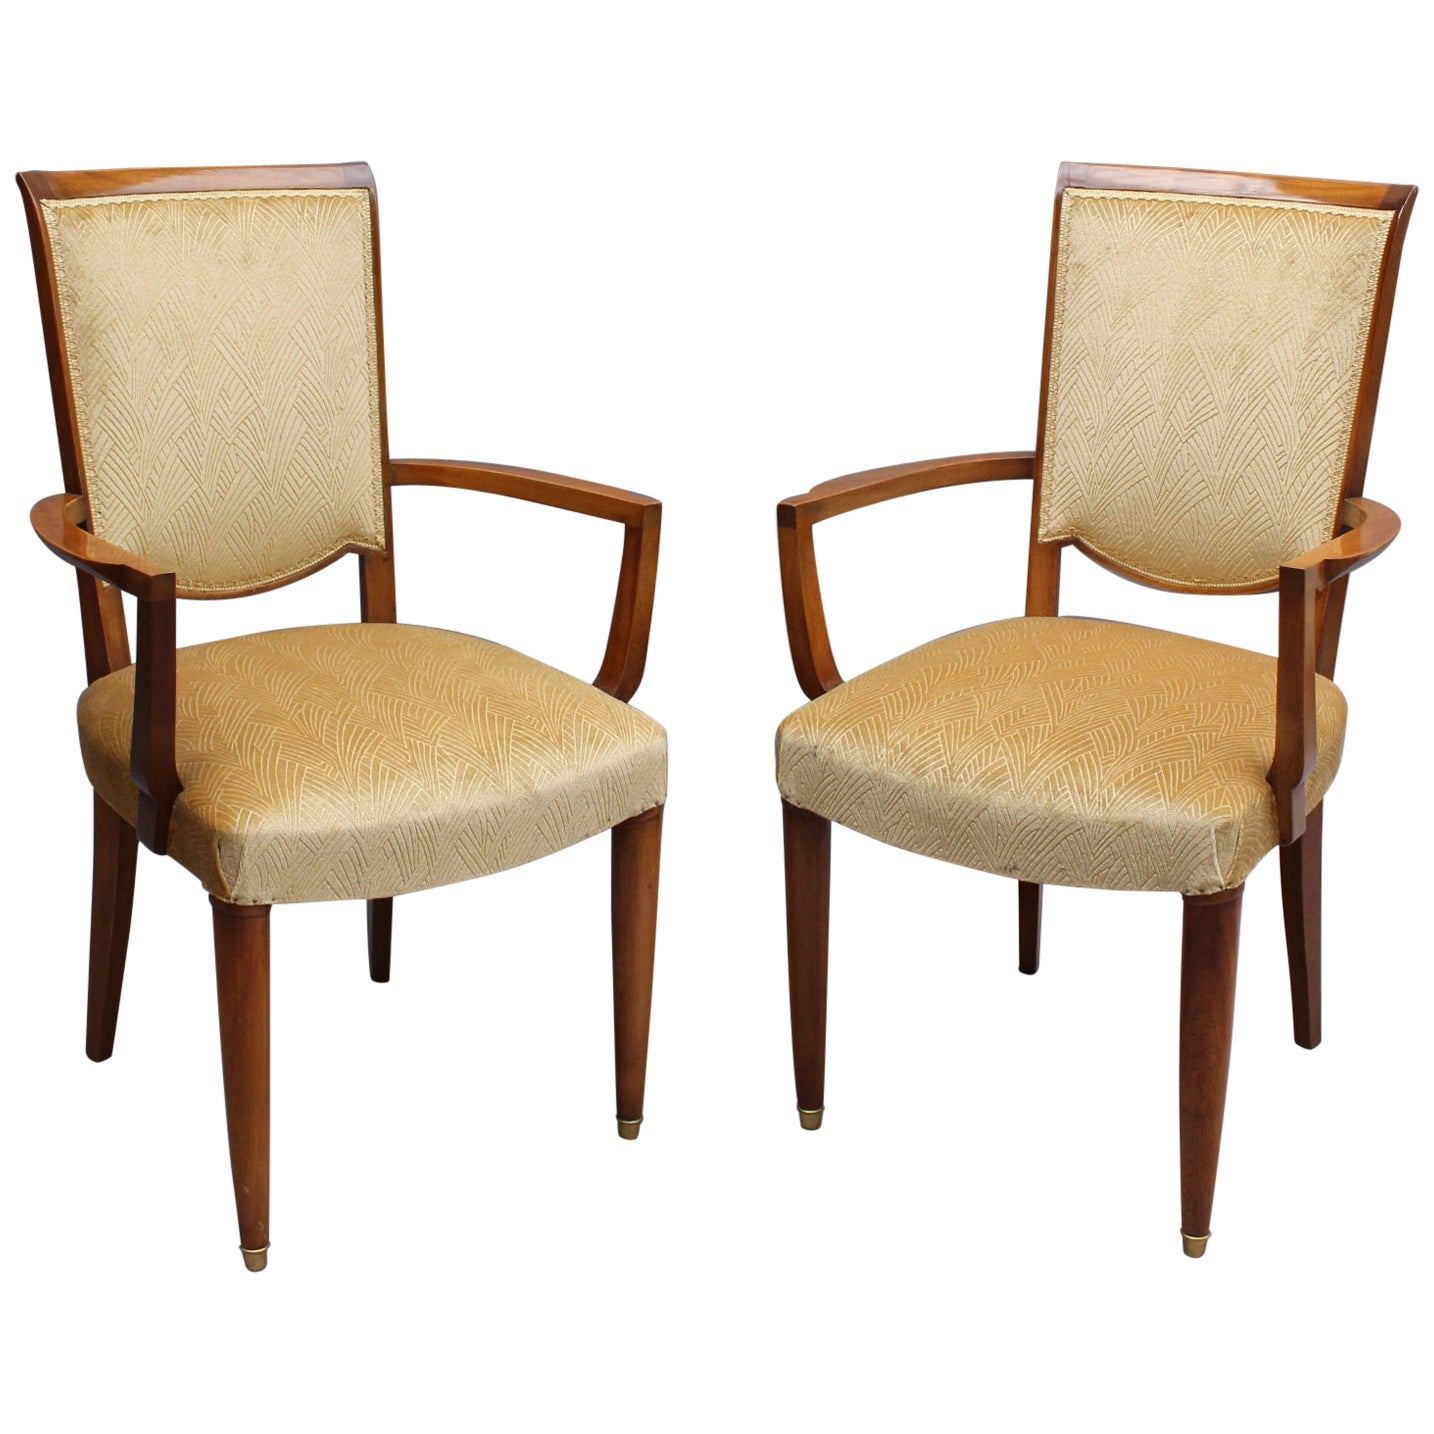 Pair of Fine French Art Deco Mahogany Armchairs by Jules Leleu